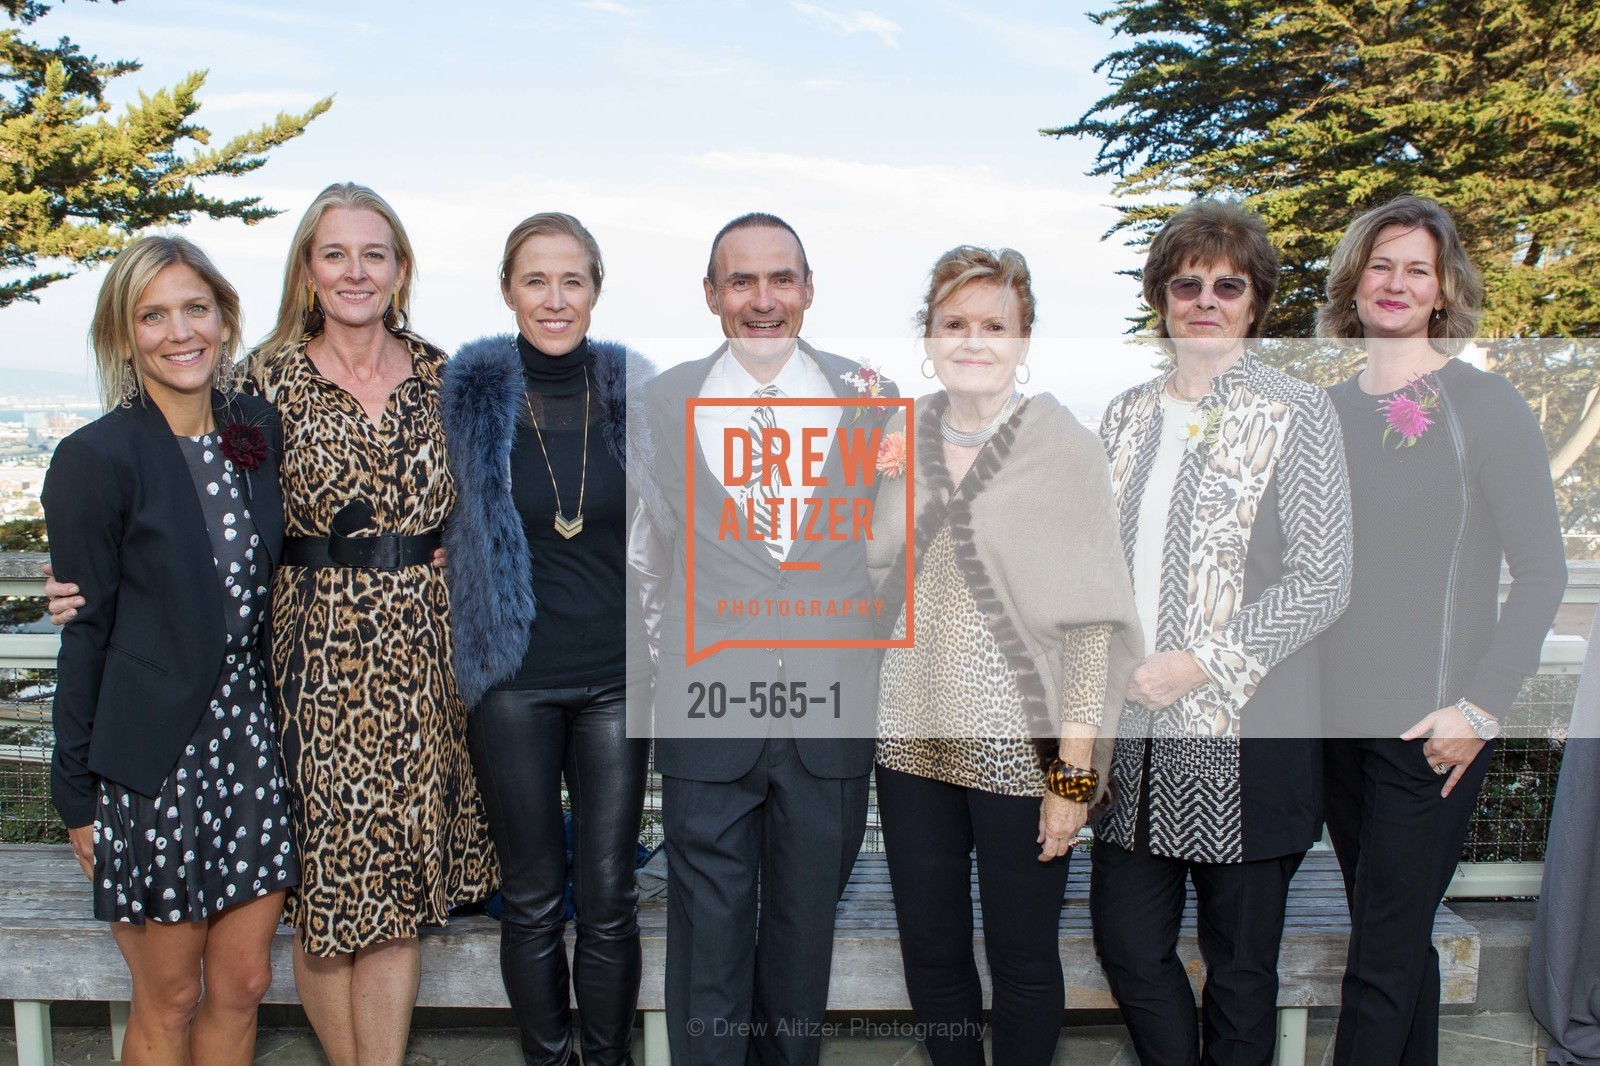 Leith Barry, Tricia Sellman, Palmer Weiss, Matt O'Grady, Connie Goodyear Baron, Nancy Conner, Beth Roy Jenkyn, GLAAD GALA Kick-Off Party Hosted by SAKS FIFTH AVENUE, Saks Fifth Avenue. 384 Post Street, September 12th, 2014,Drew Altizer, Drew Altizer Photography, full-service agency, private events, San Francisco photographer, photographer california